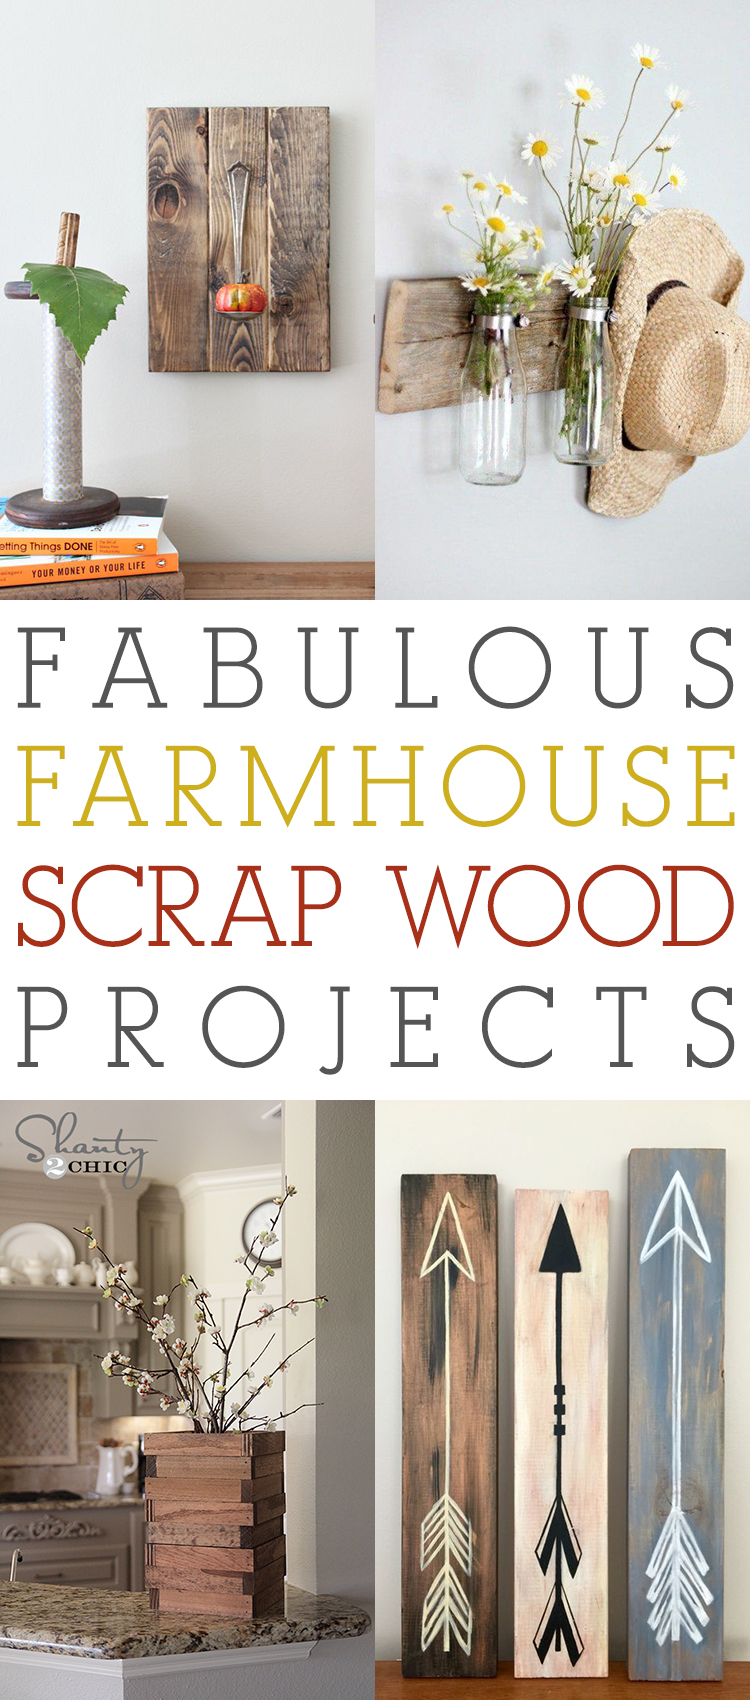 So Go Check Out That Pile Of Scrap Woodthen Grab A Cup Your Favorite Brew And These Projectsyou Will Be Glad You Did